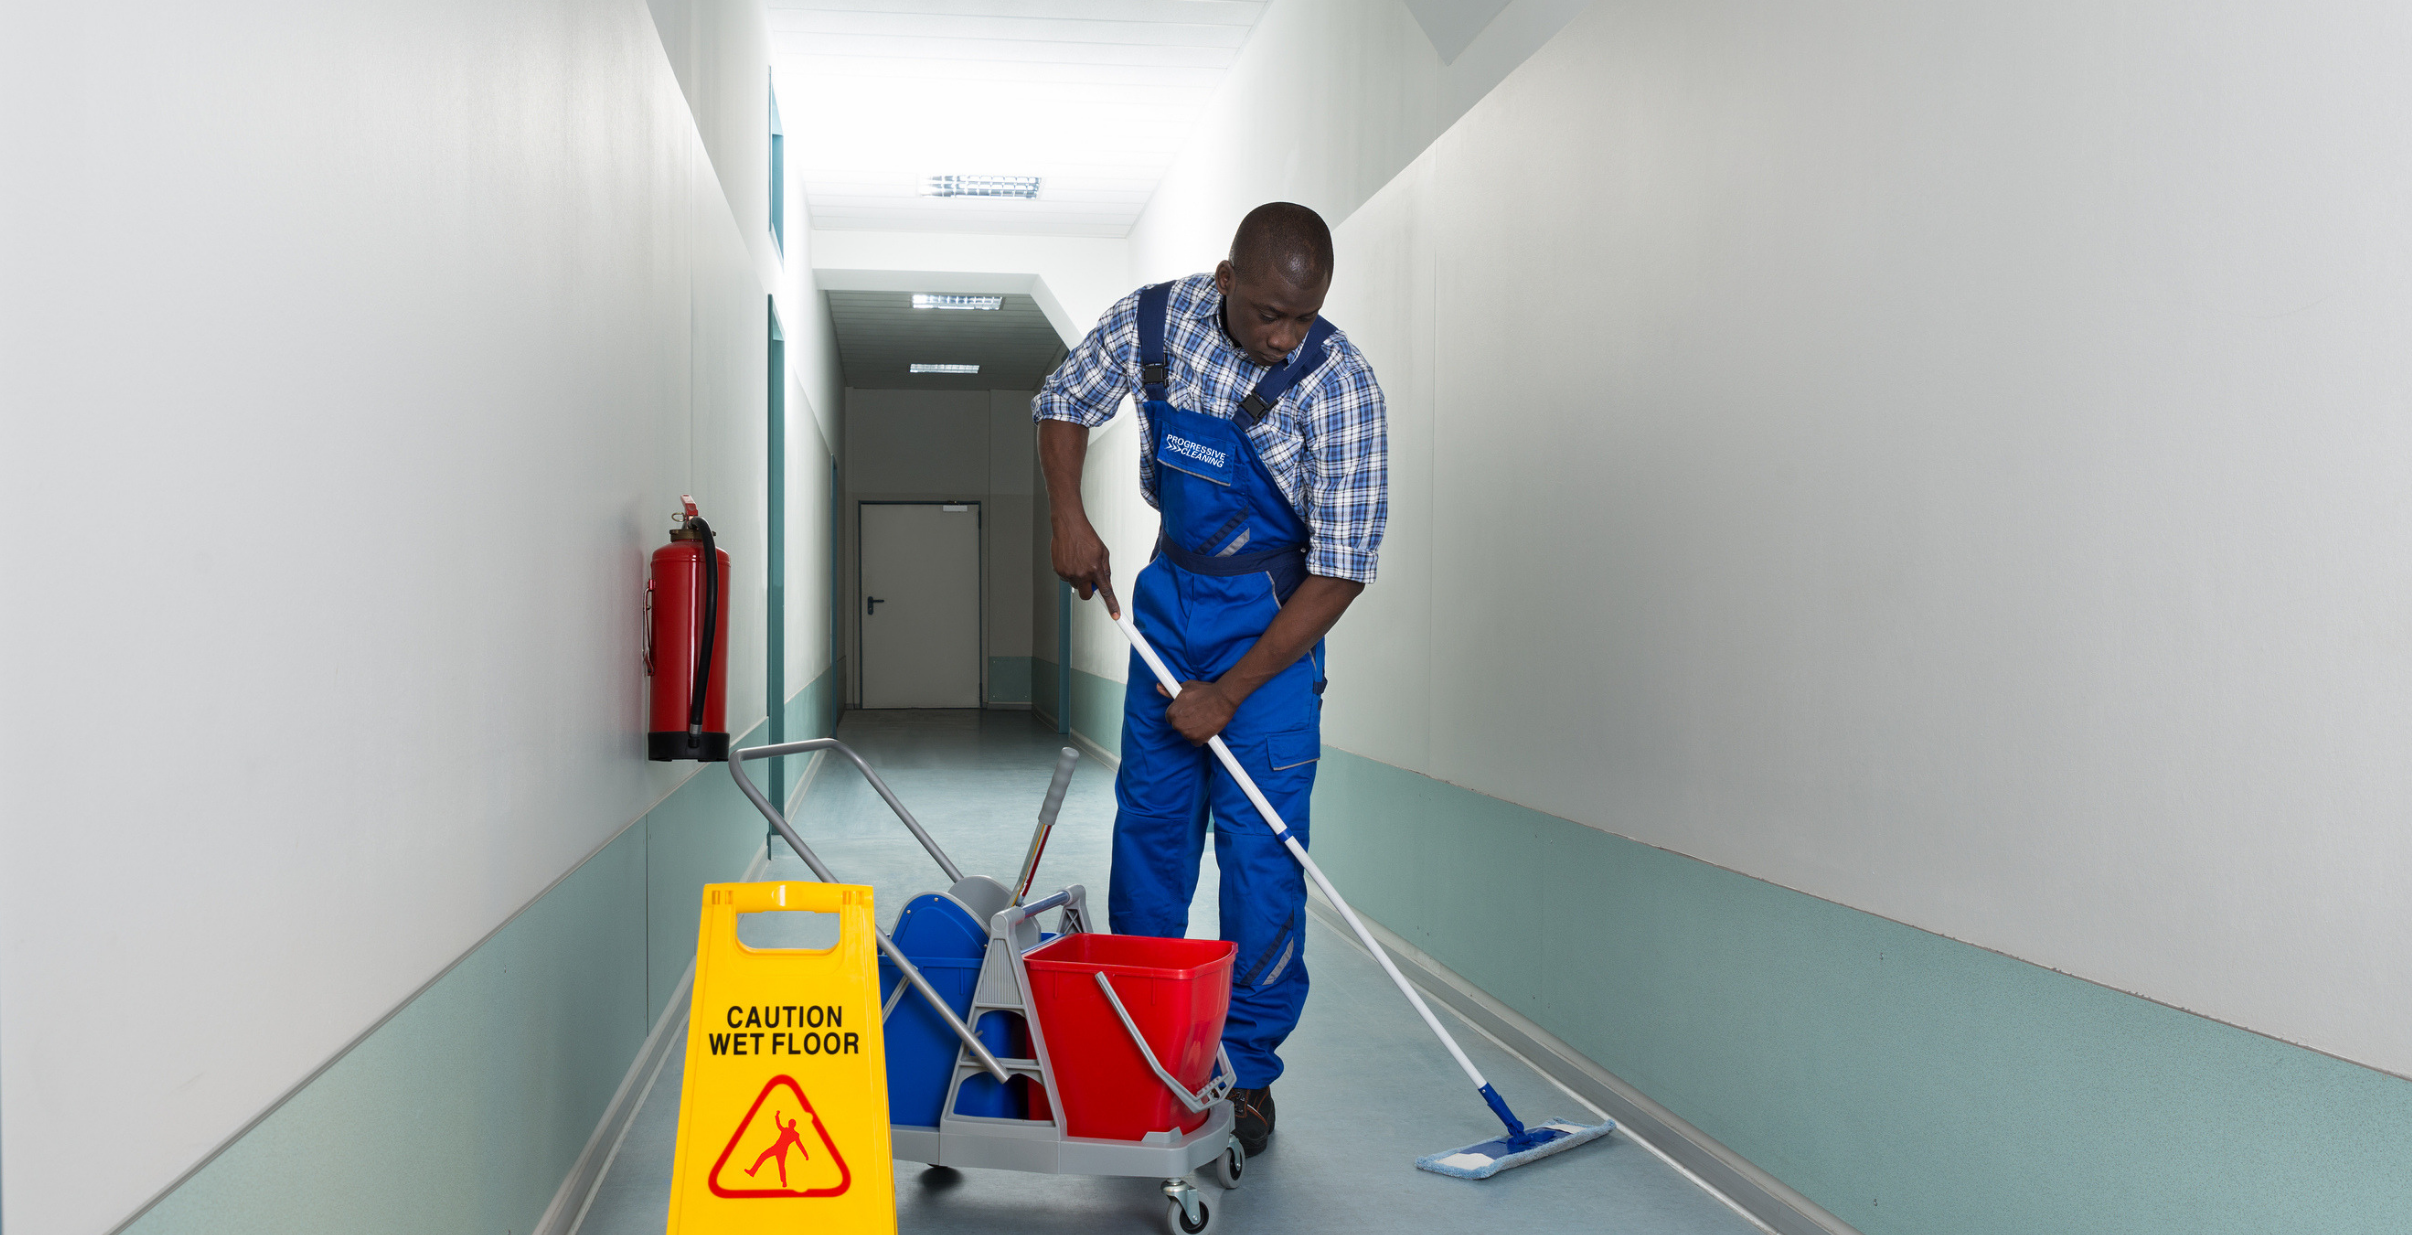 ecosensitive Male commercial cleaner mopping vinyl floor with microfiber mop in blue uniform